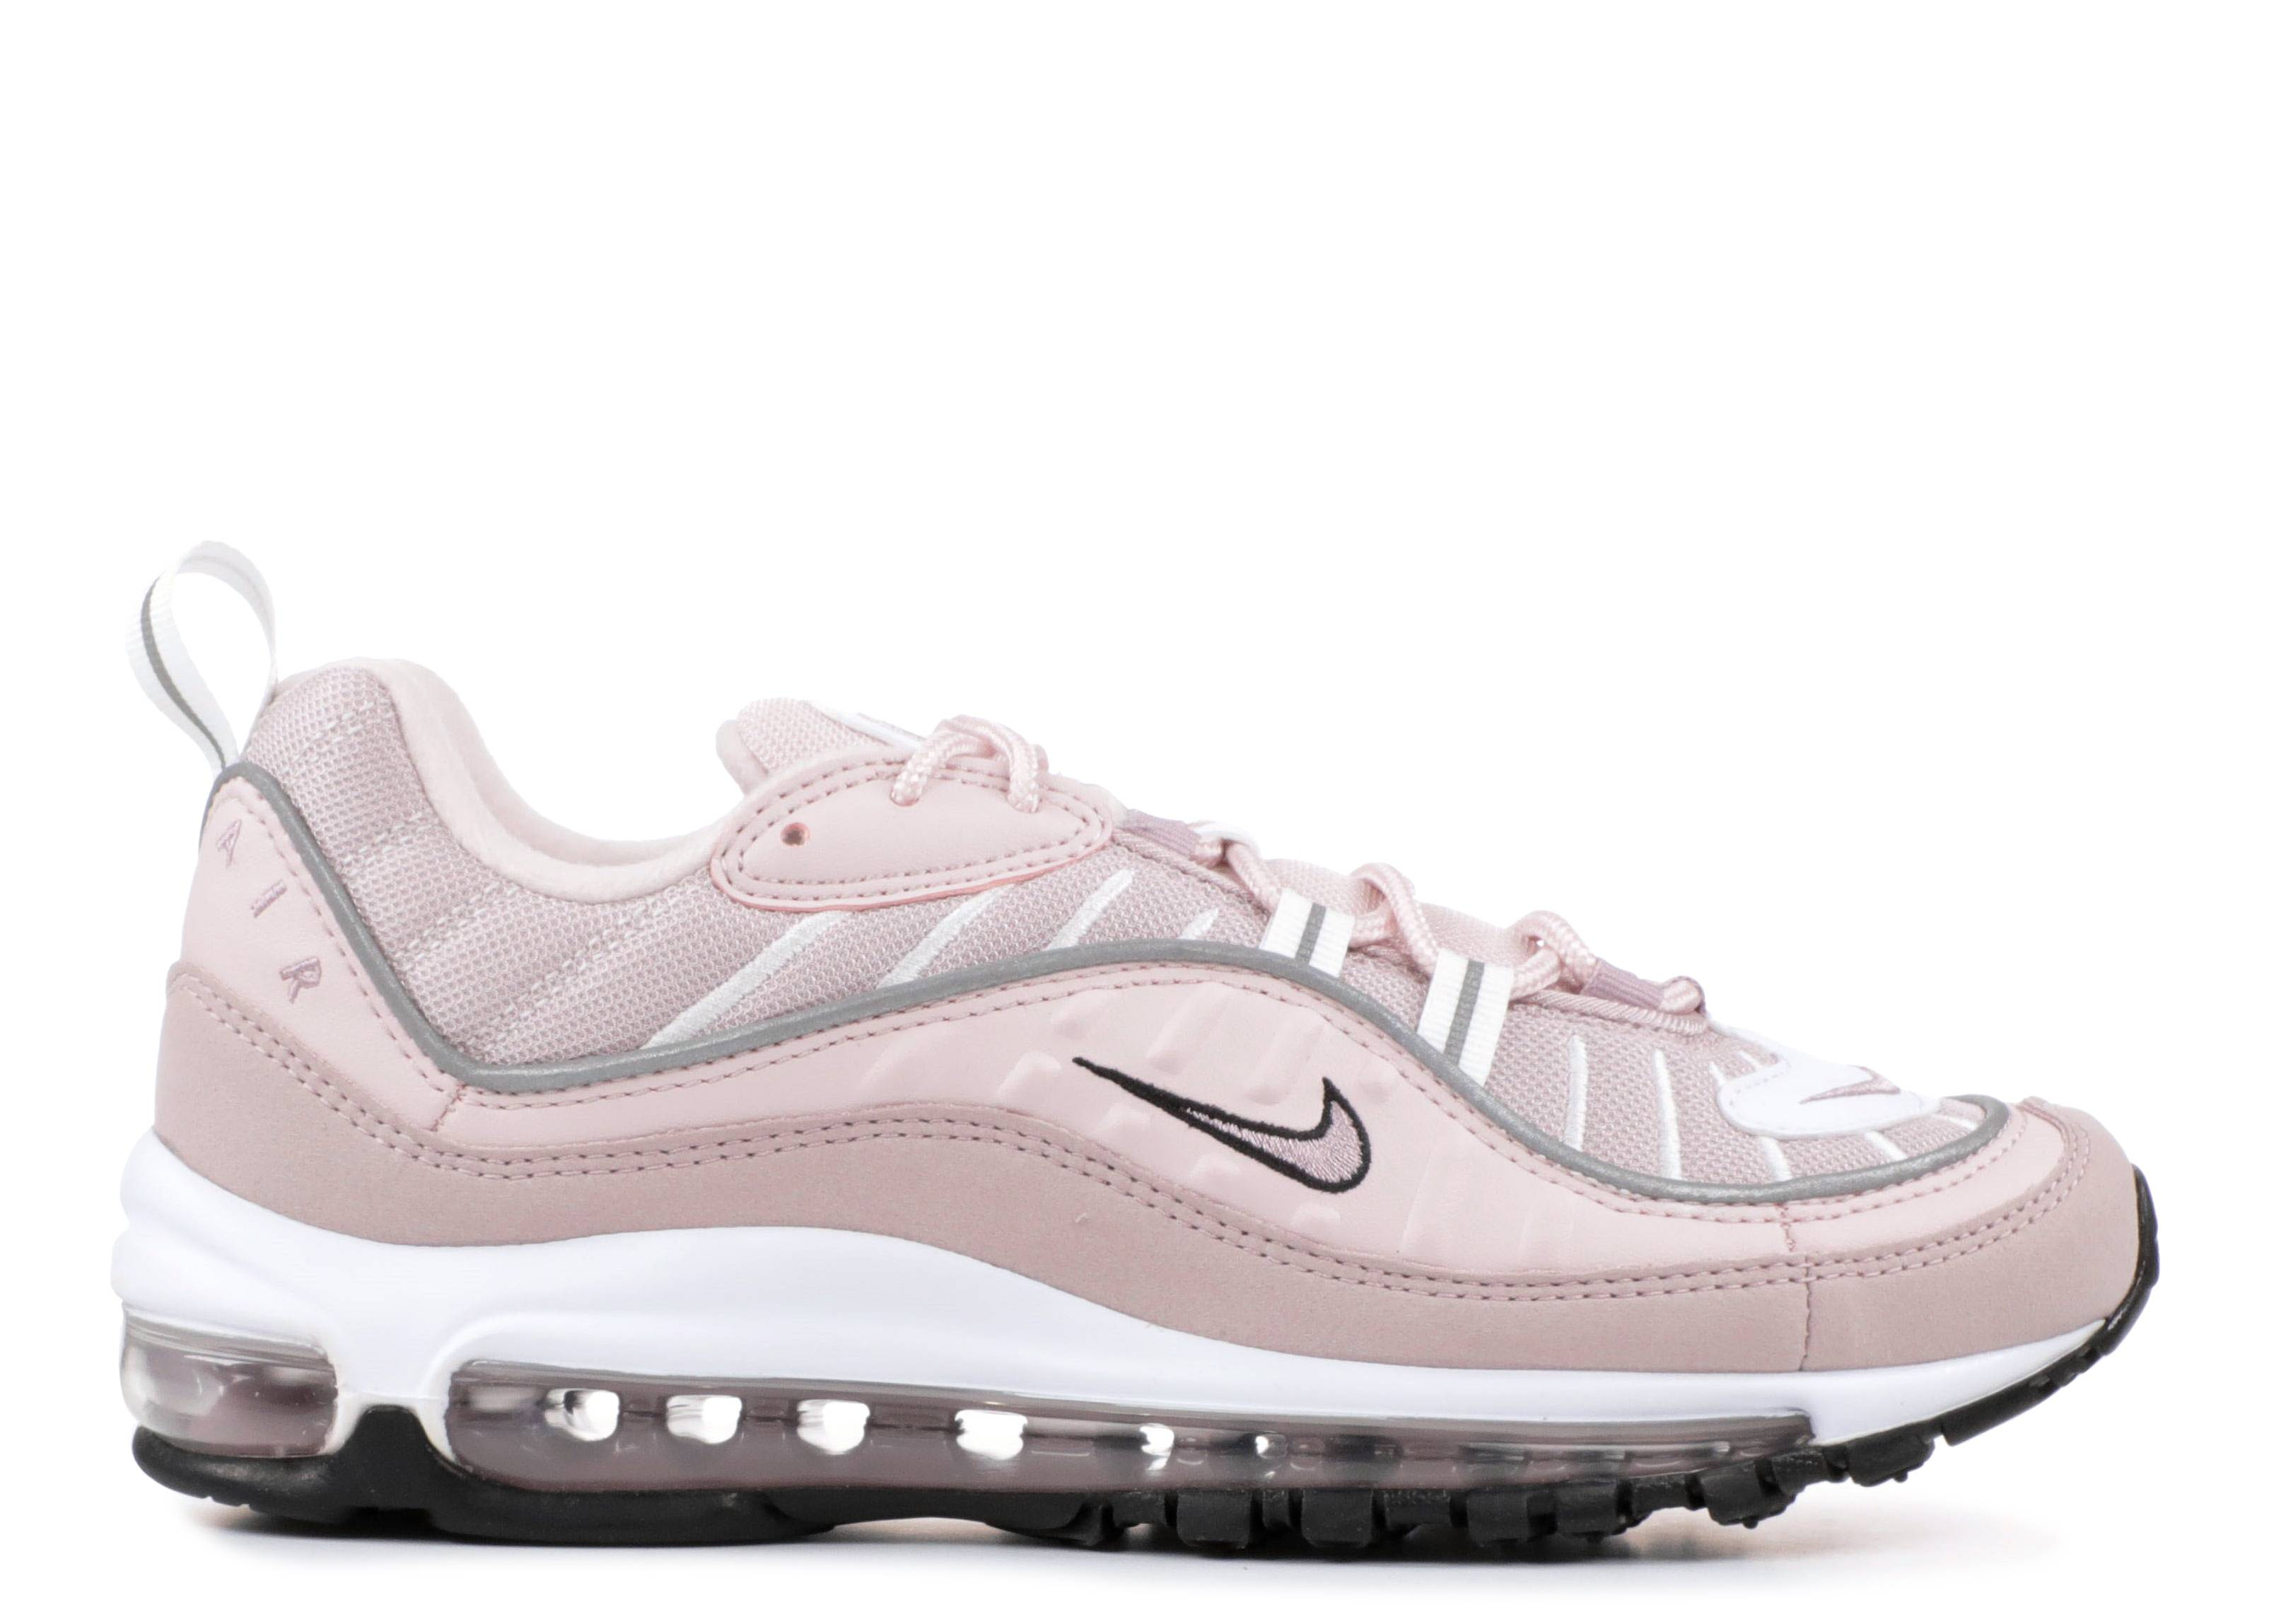 W Air Max 98 Nike AH6799 600a barely roseelemental rose | Flight Club